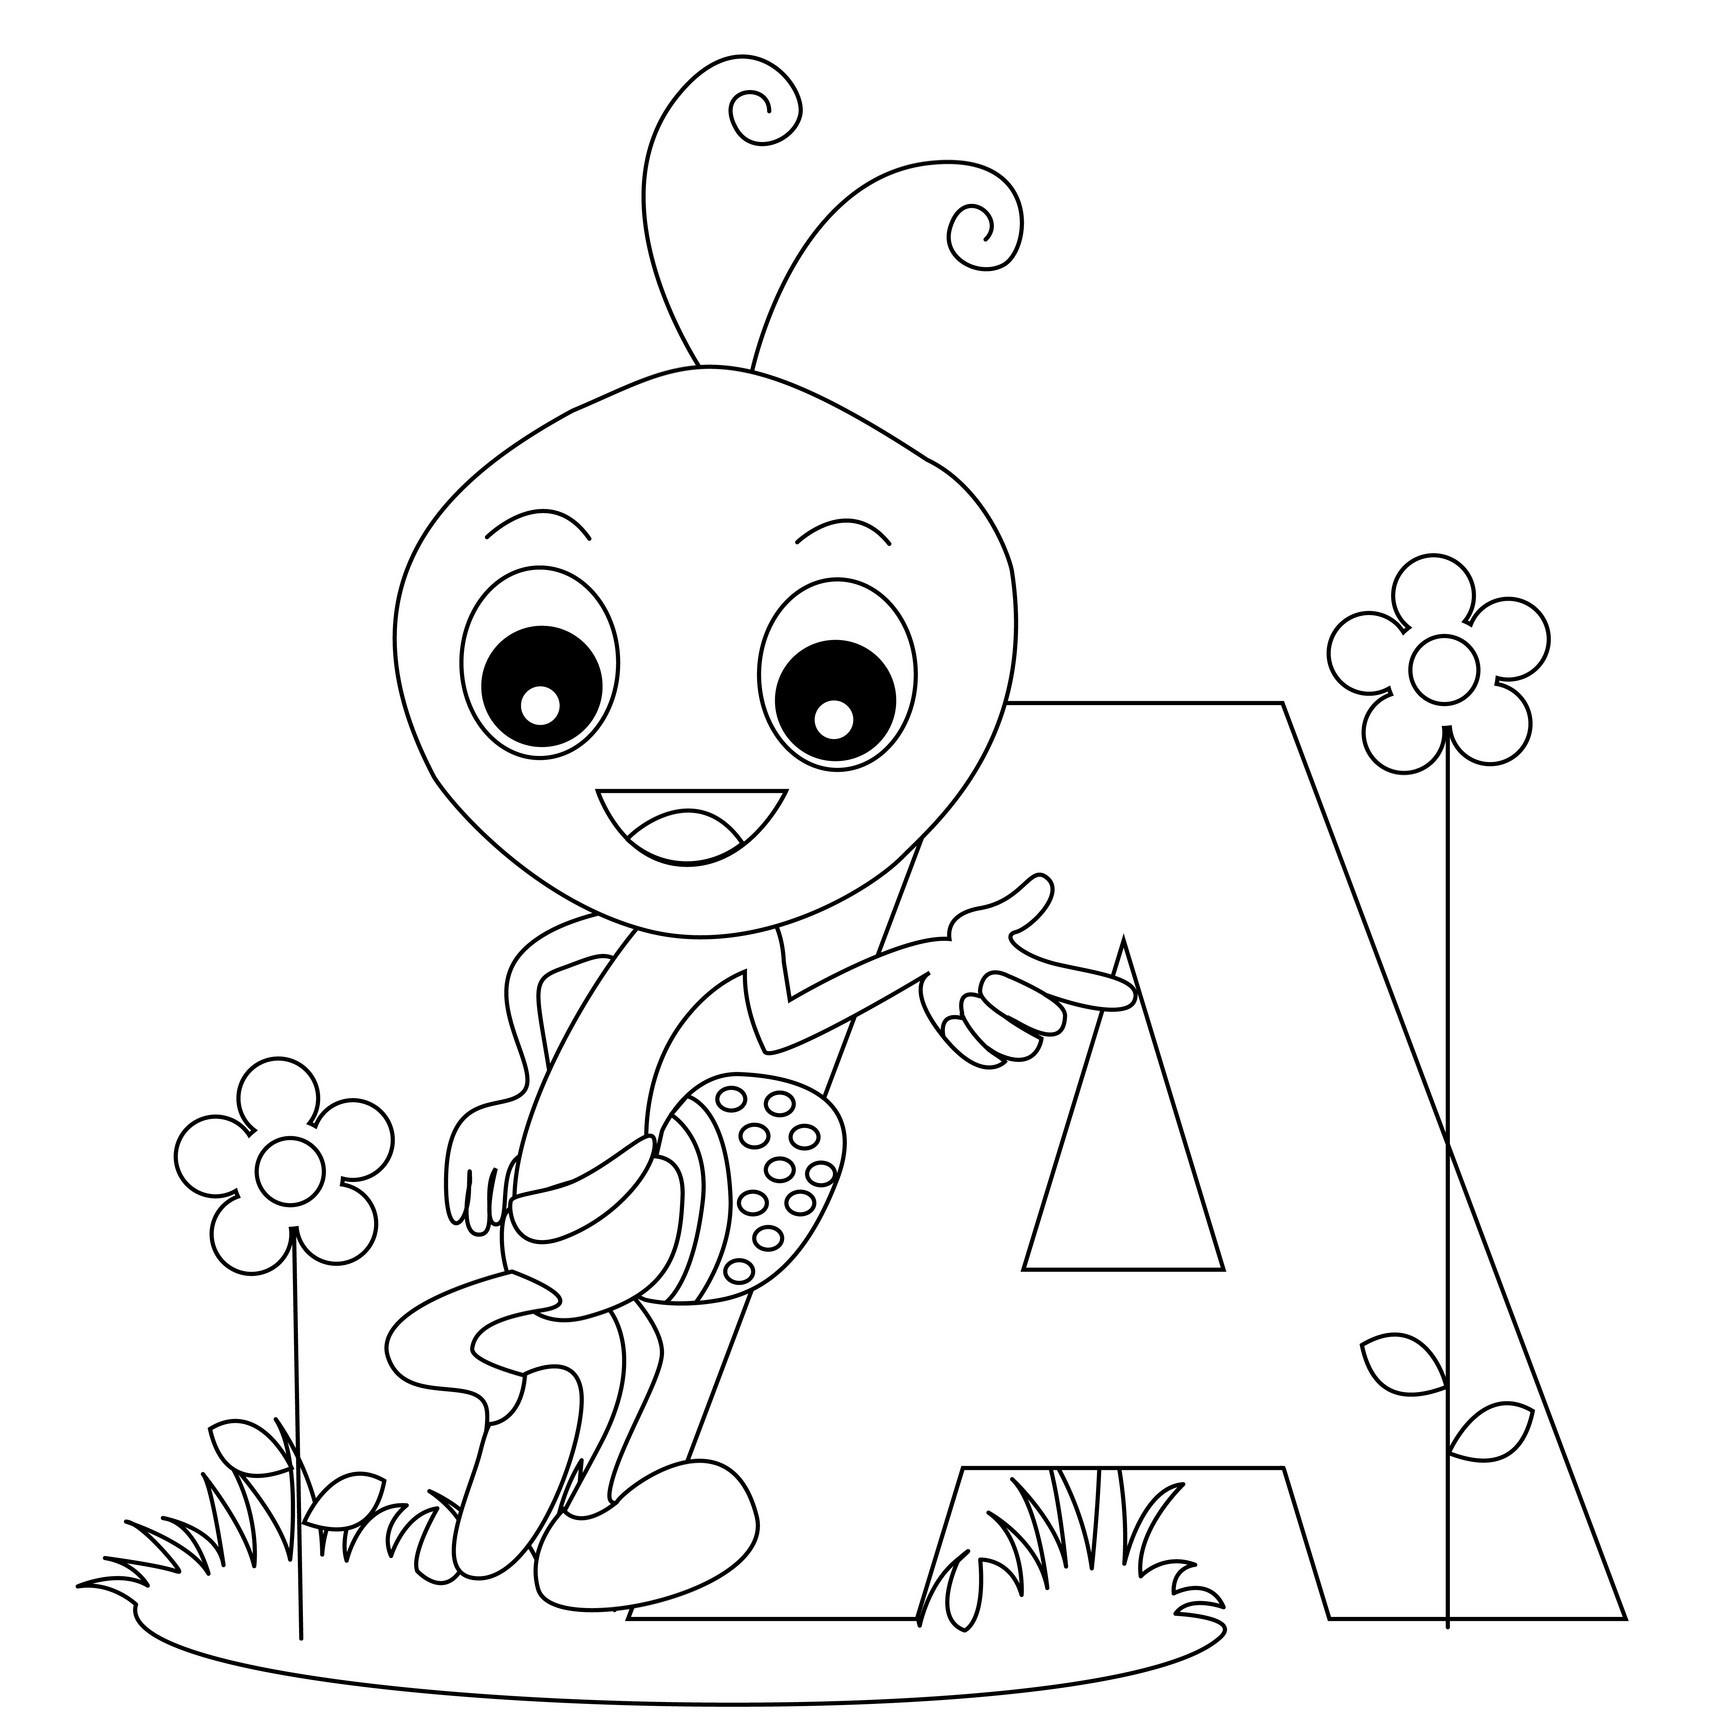 Alphabet Coloring Pages W : Free printable alphabet coloring pages for kids best